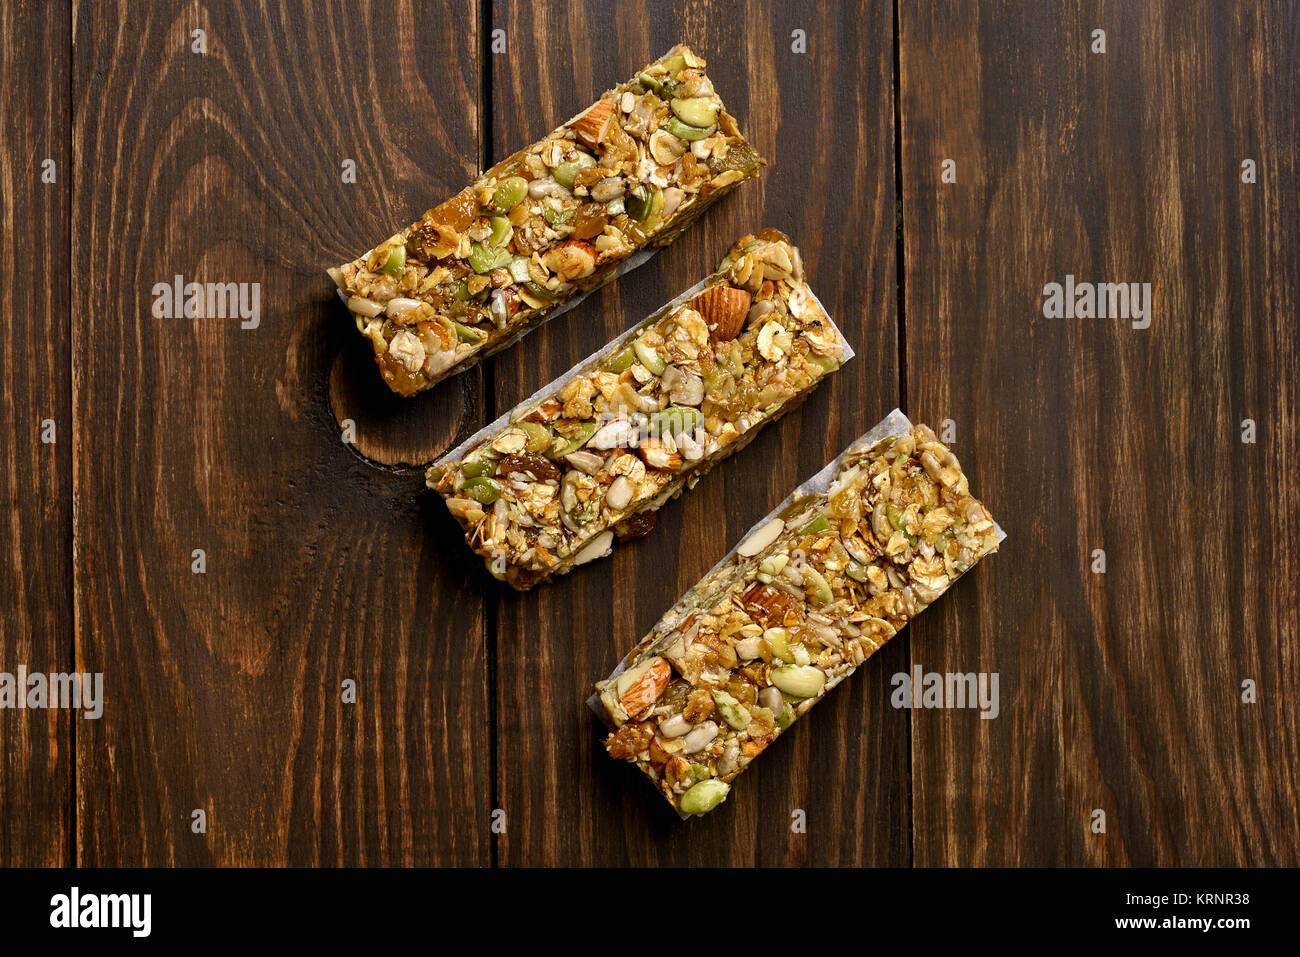 Granola bar. Energy snack on wooden background. Top view, flat lay - Stock Image